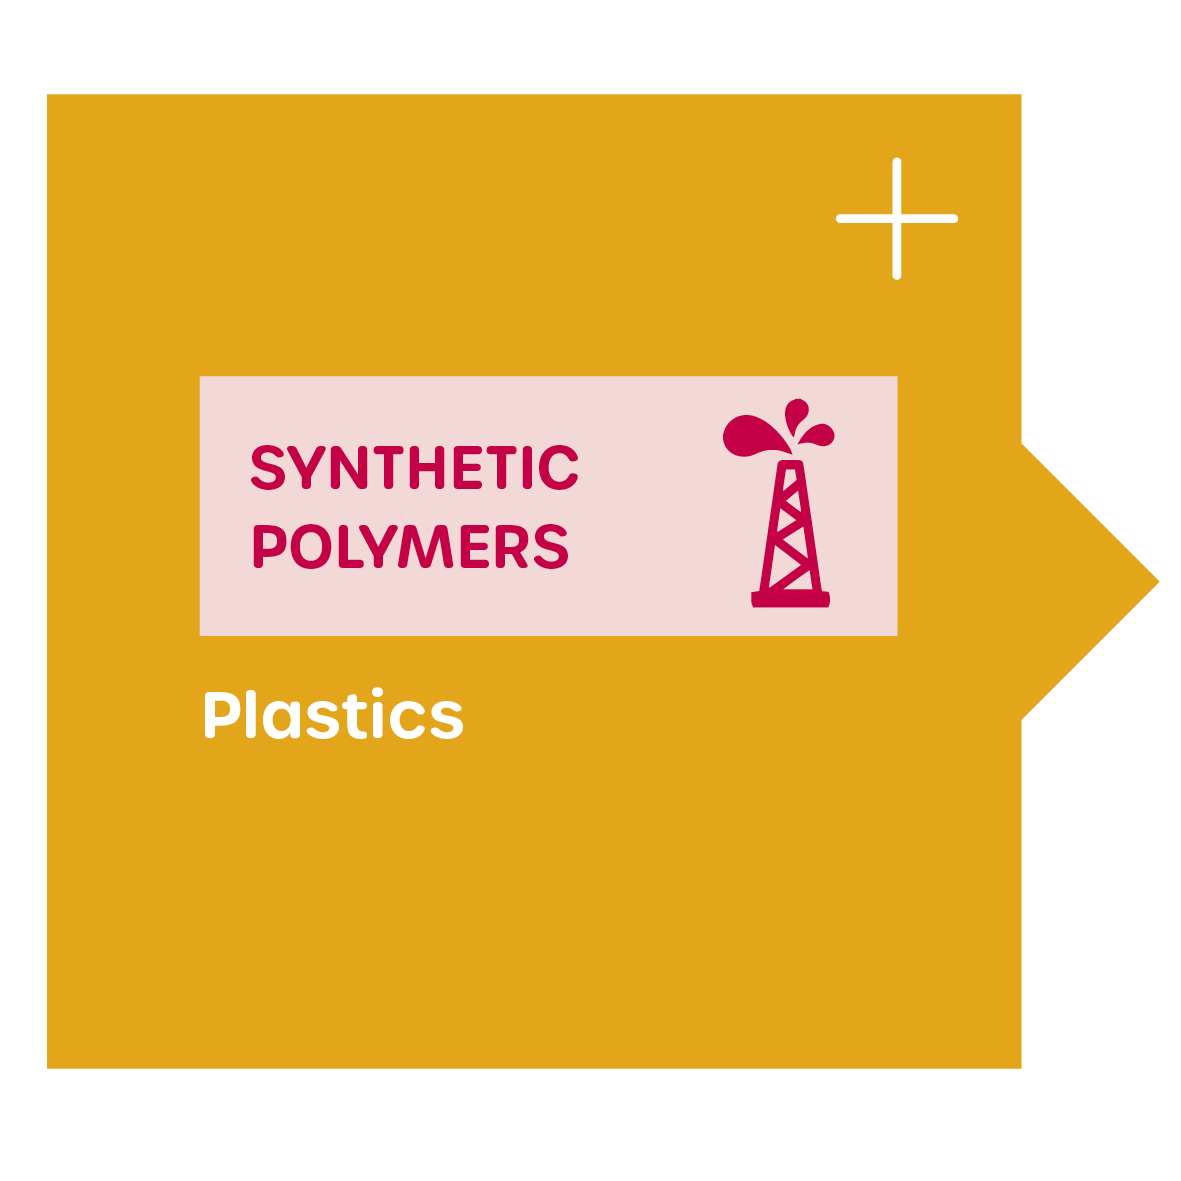 Plastics = synthetic polymers